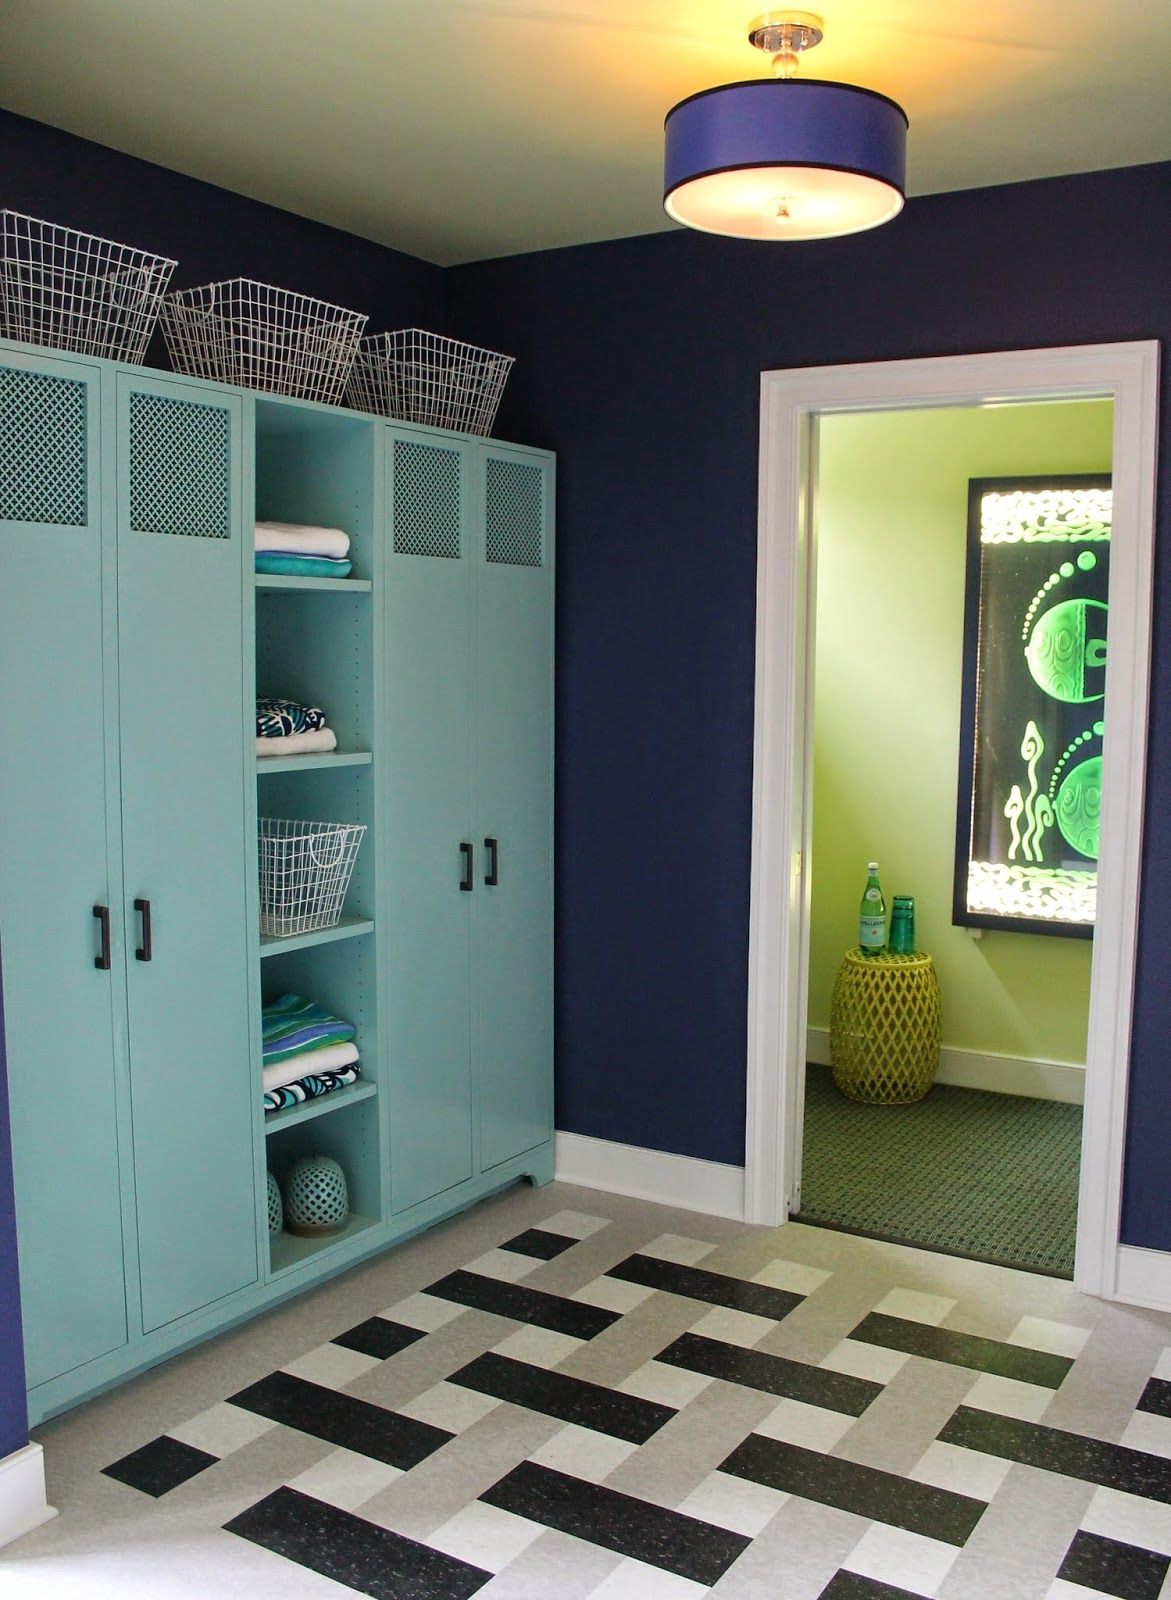 Dc Design House 2017 Part 2 Pool Changing Room With Lockers Bathroom And Laundry